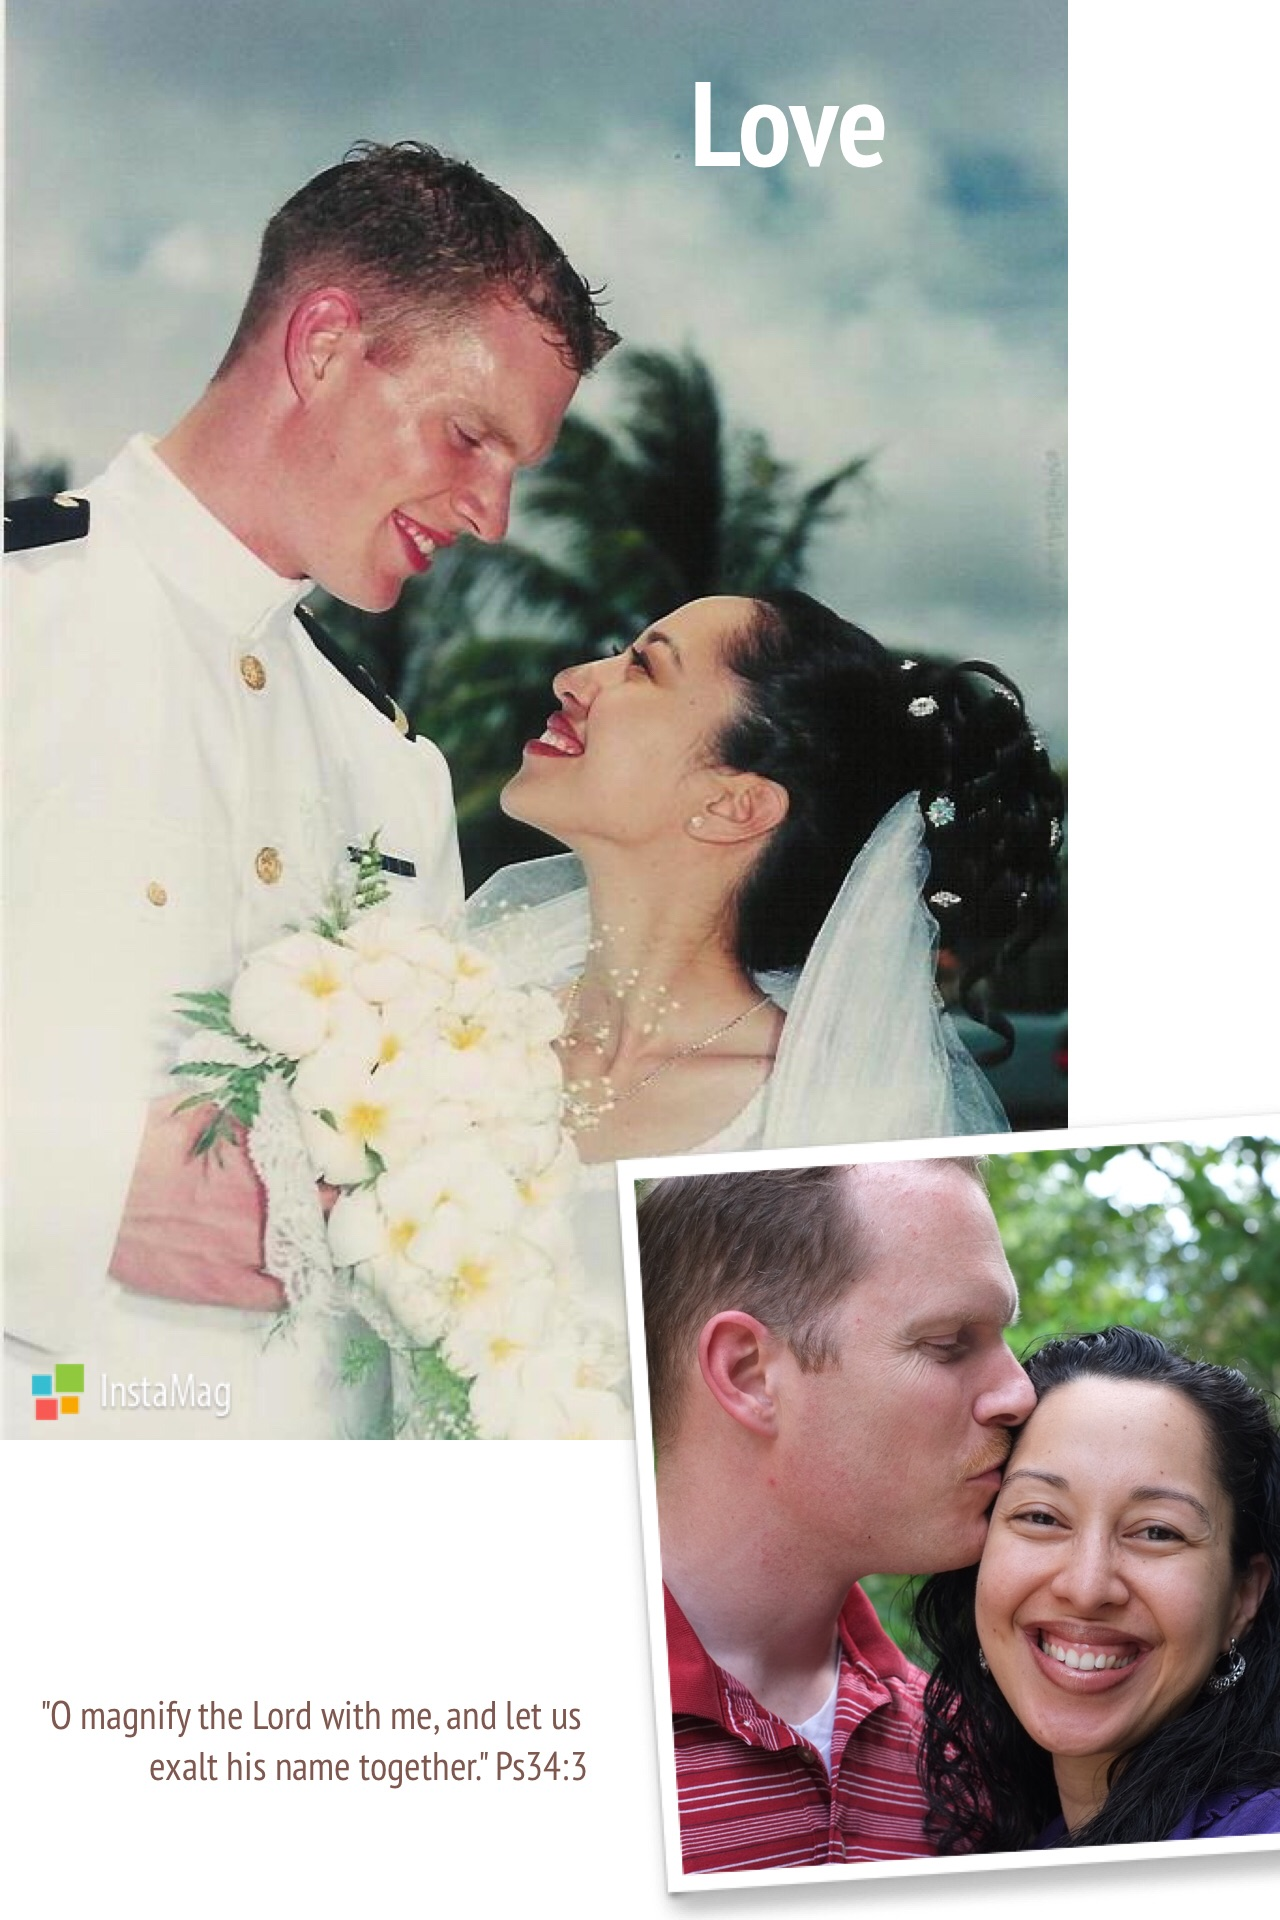 Our wedding day in Saipan and 13 years later. Photography by Saipan Photo Lab and our 10-year-old daughter Pelaiah